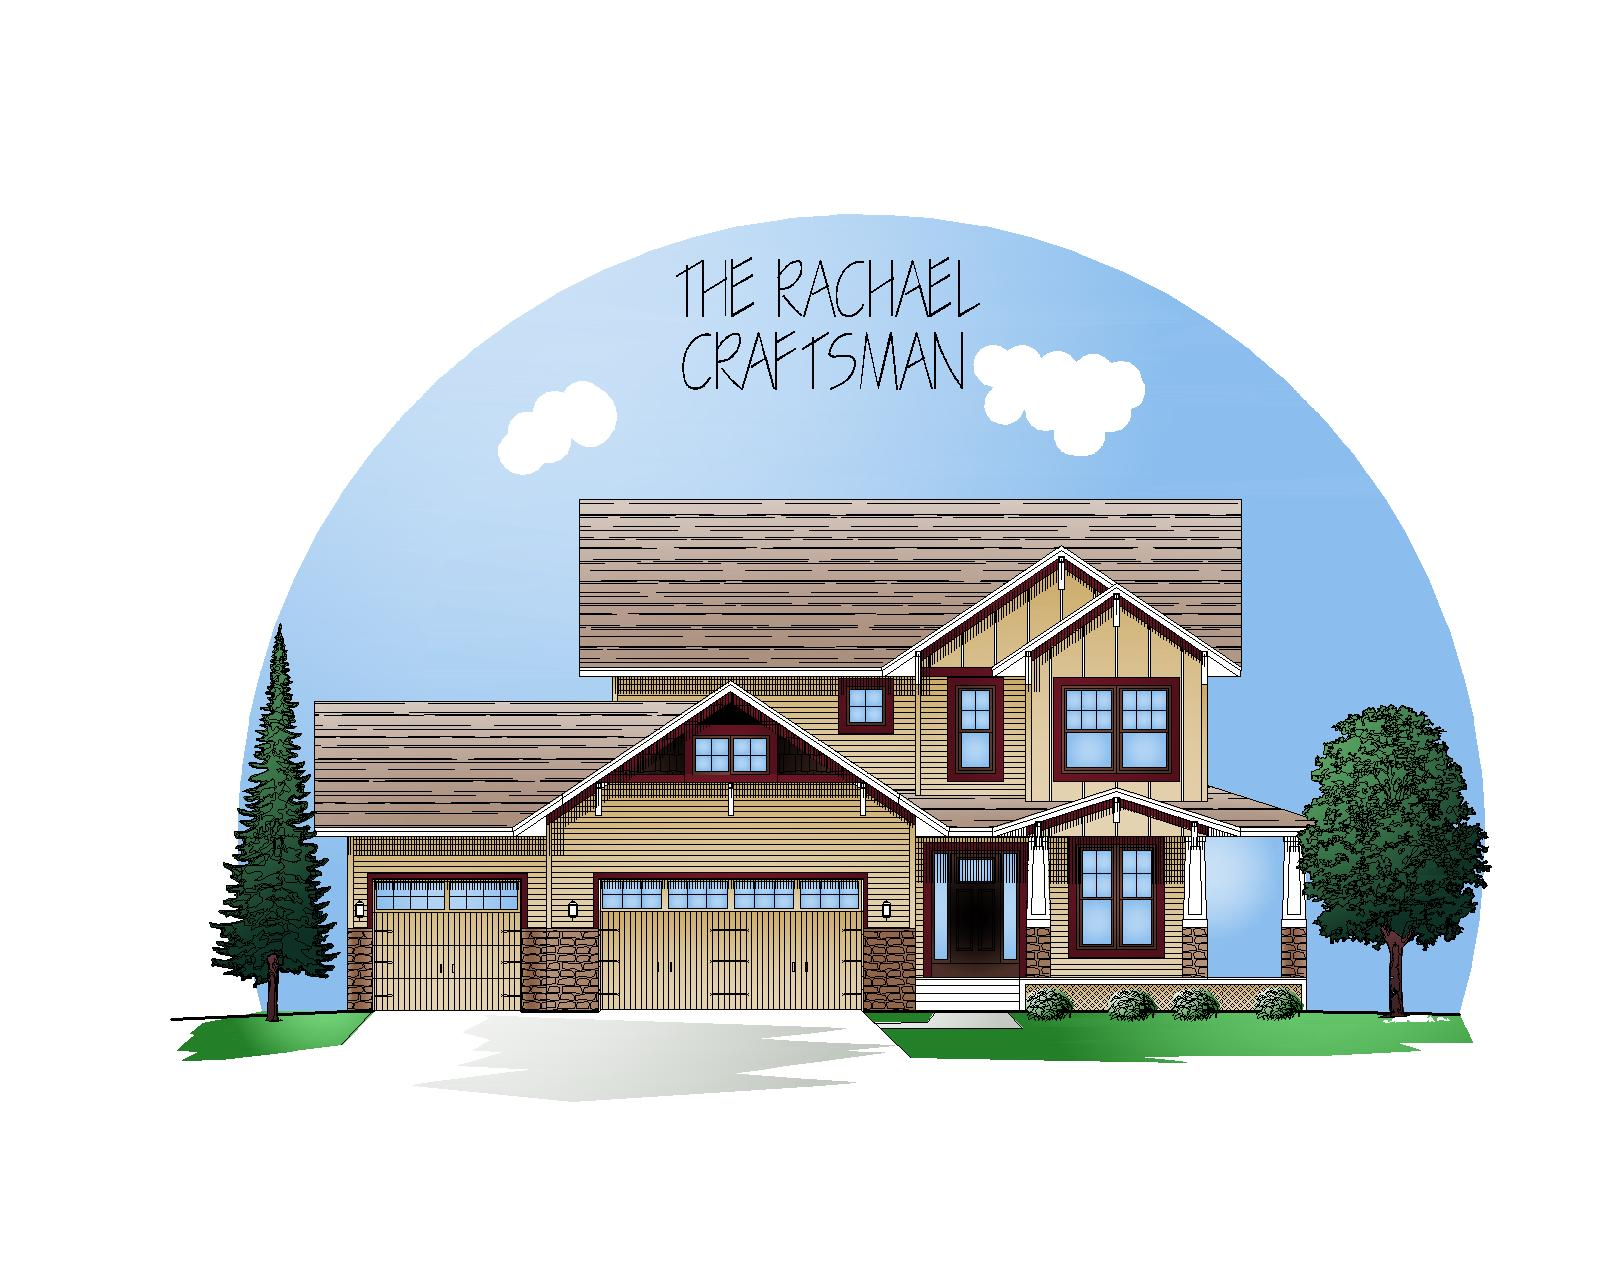 Craftsman exterior style